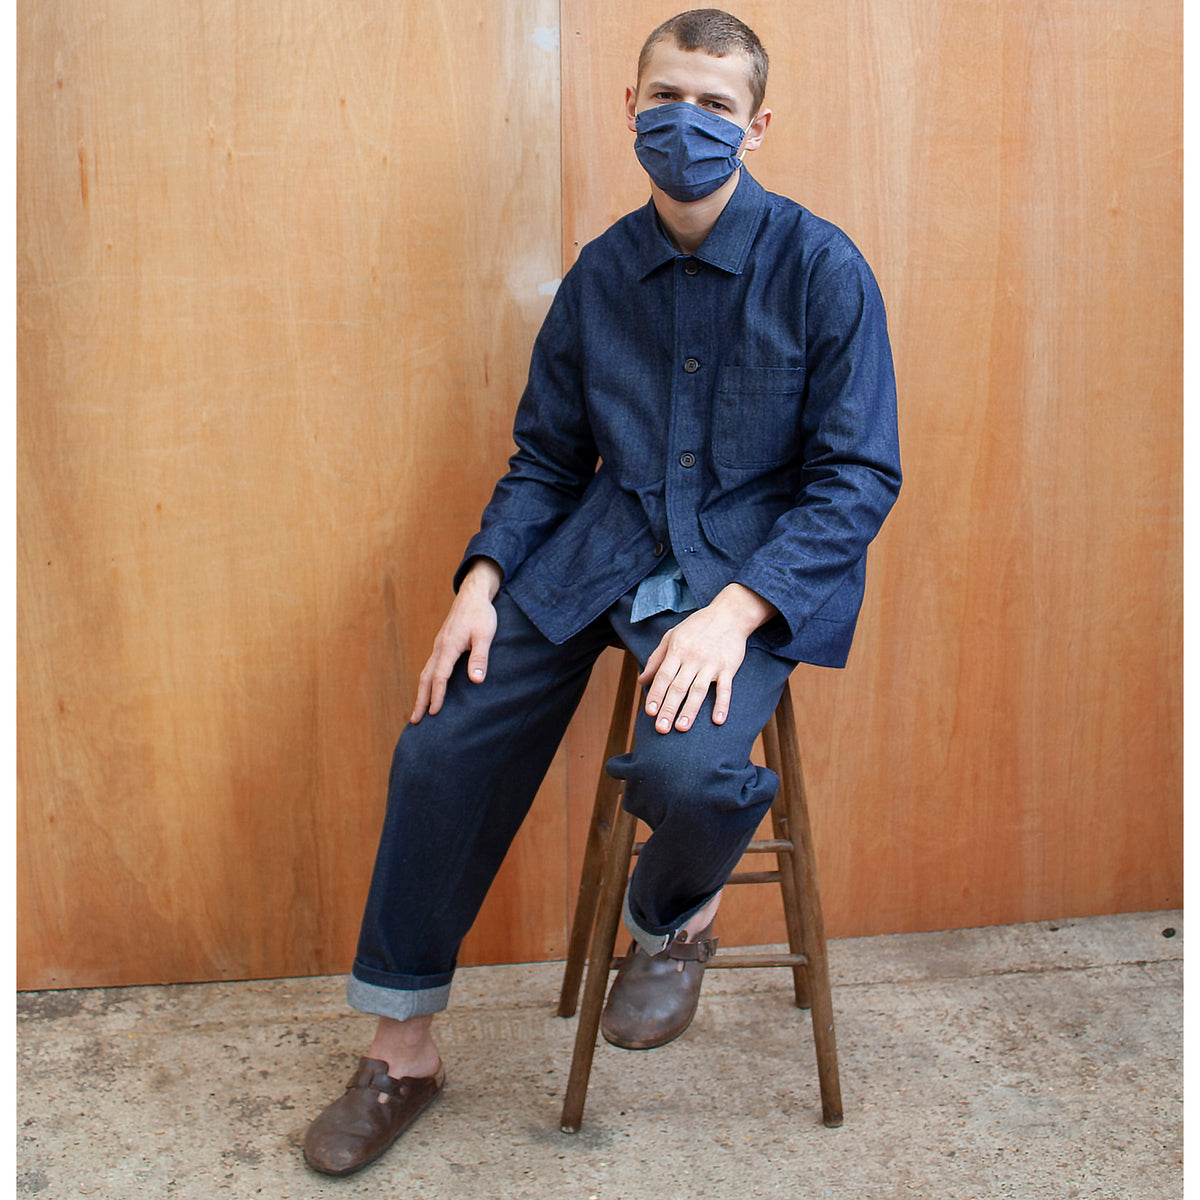 man wearing a face mask and a traditional chore jacket made in denim, he is sitting on a wooden stool against a wooden wall